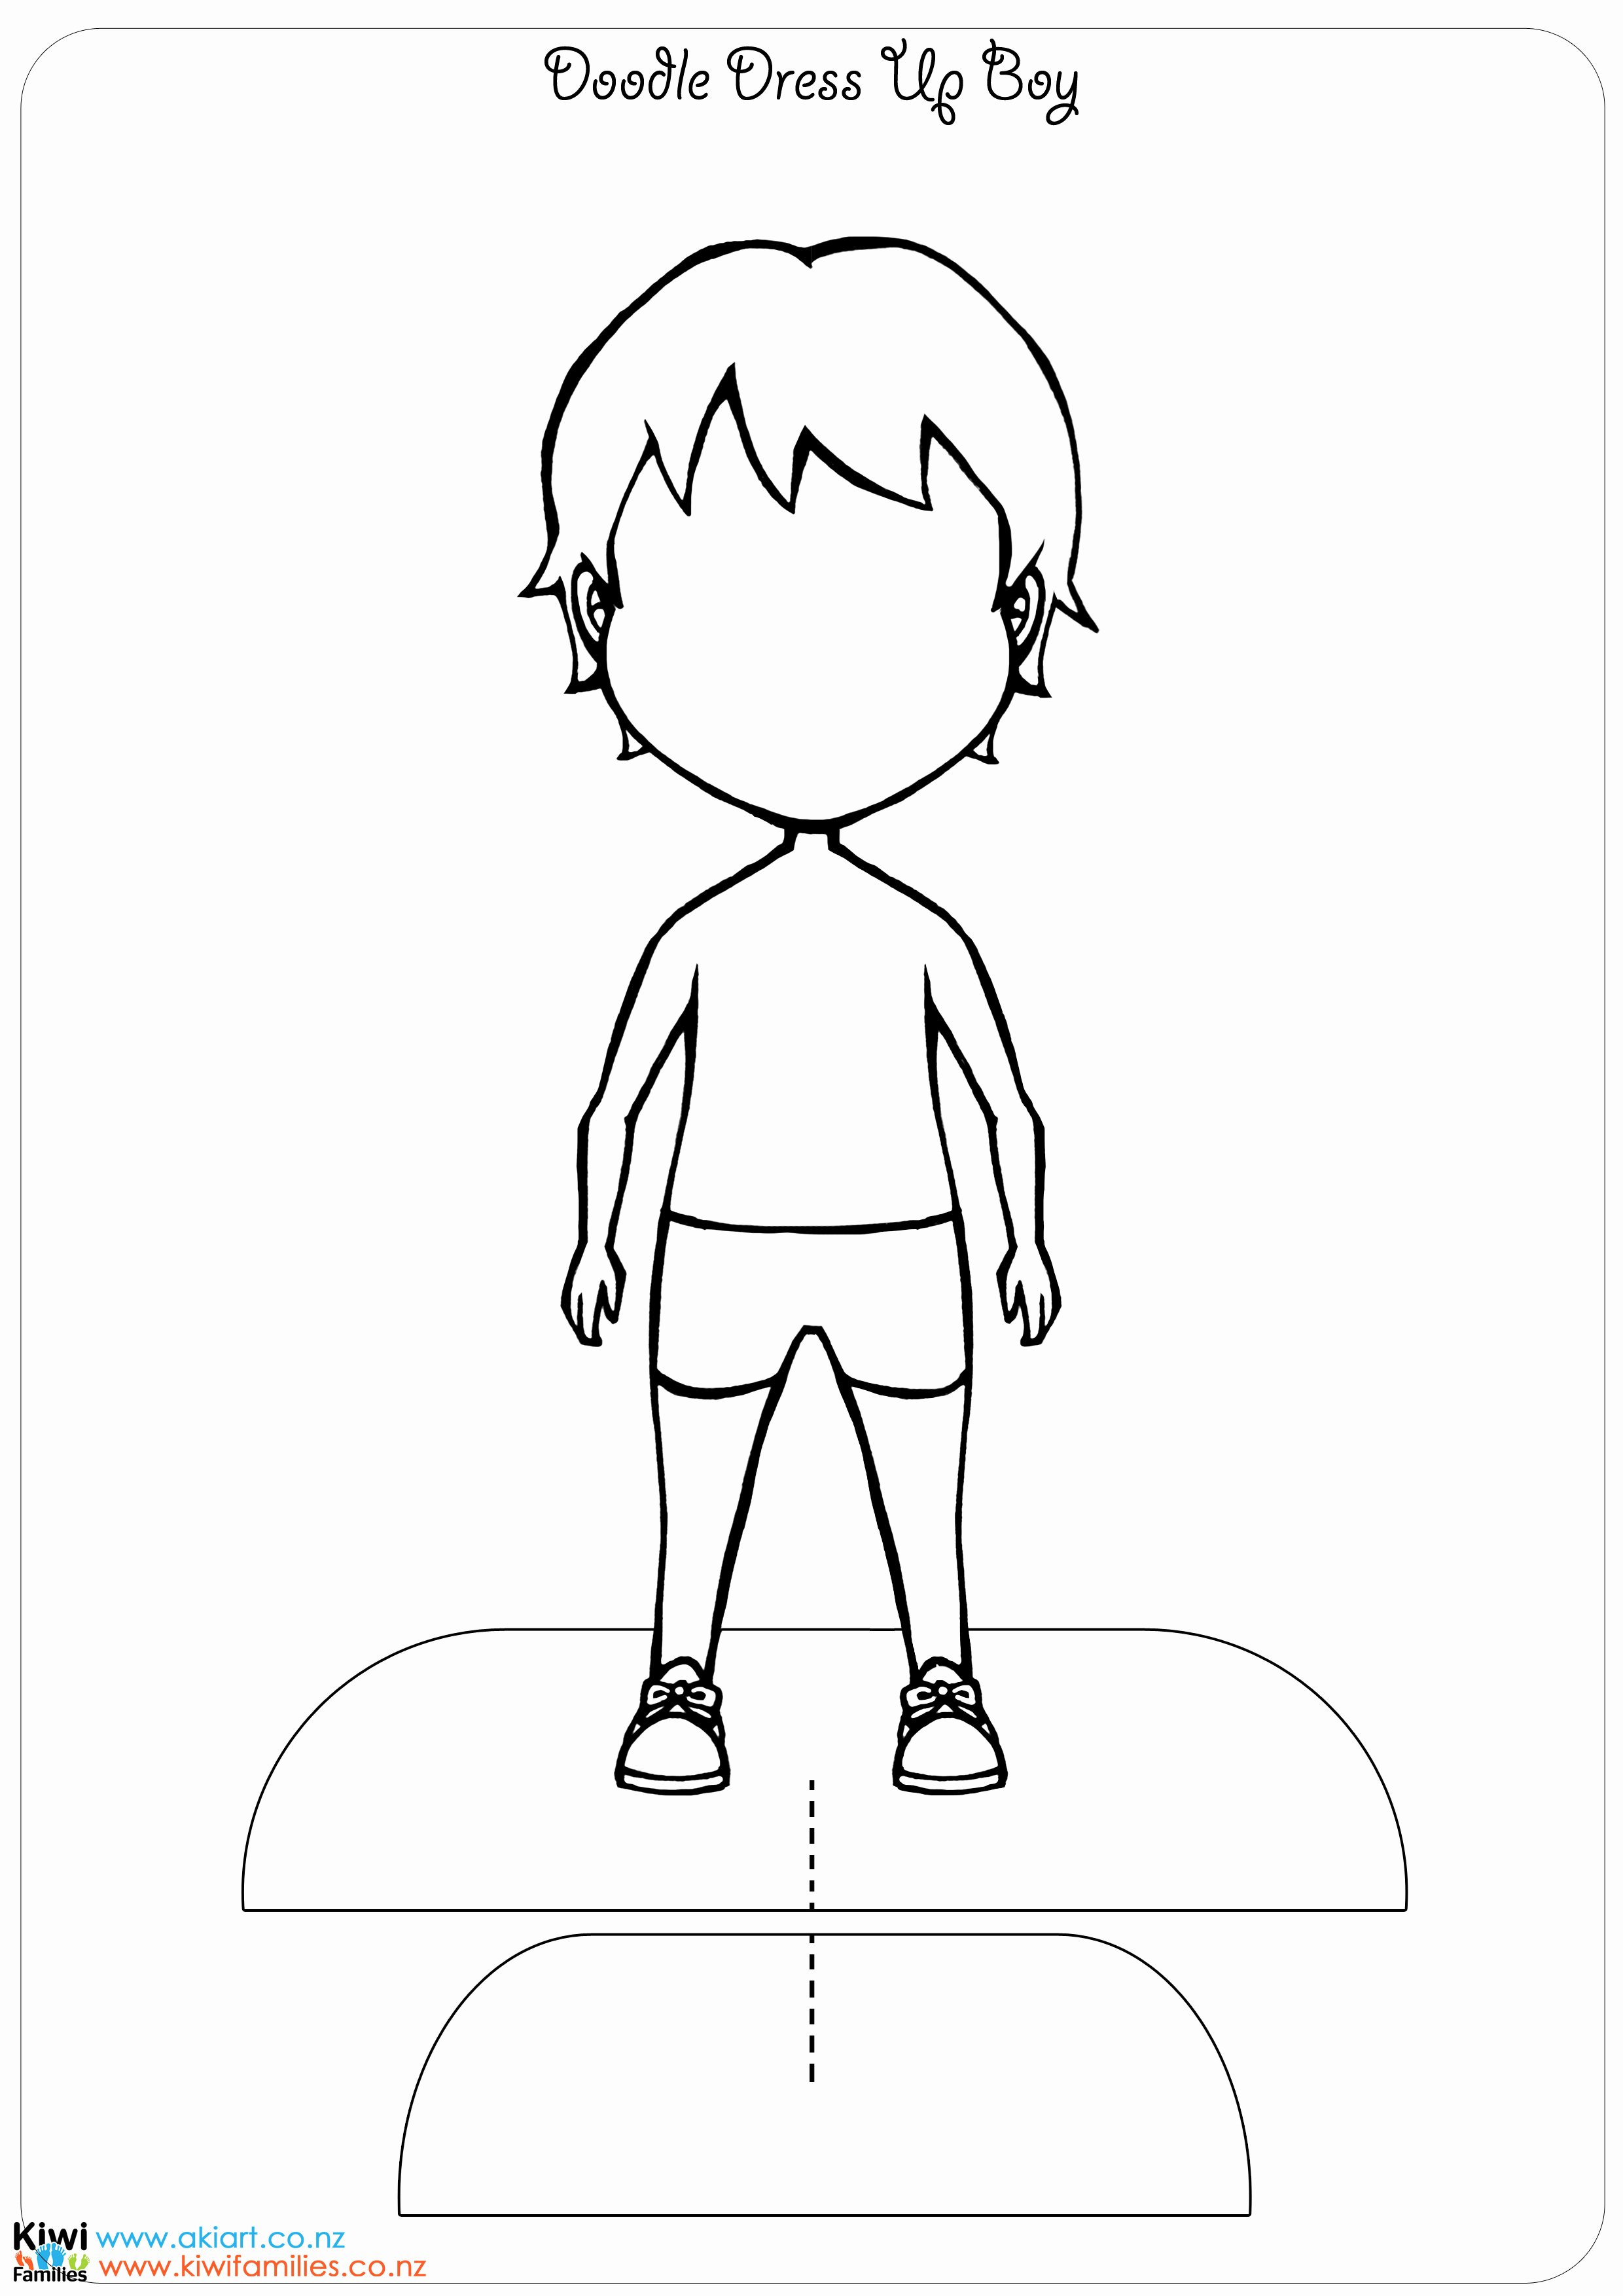 Paper Doll Clothes Template Elegant Make Your Own Paper Dolls Kiwi Families